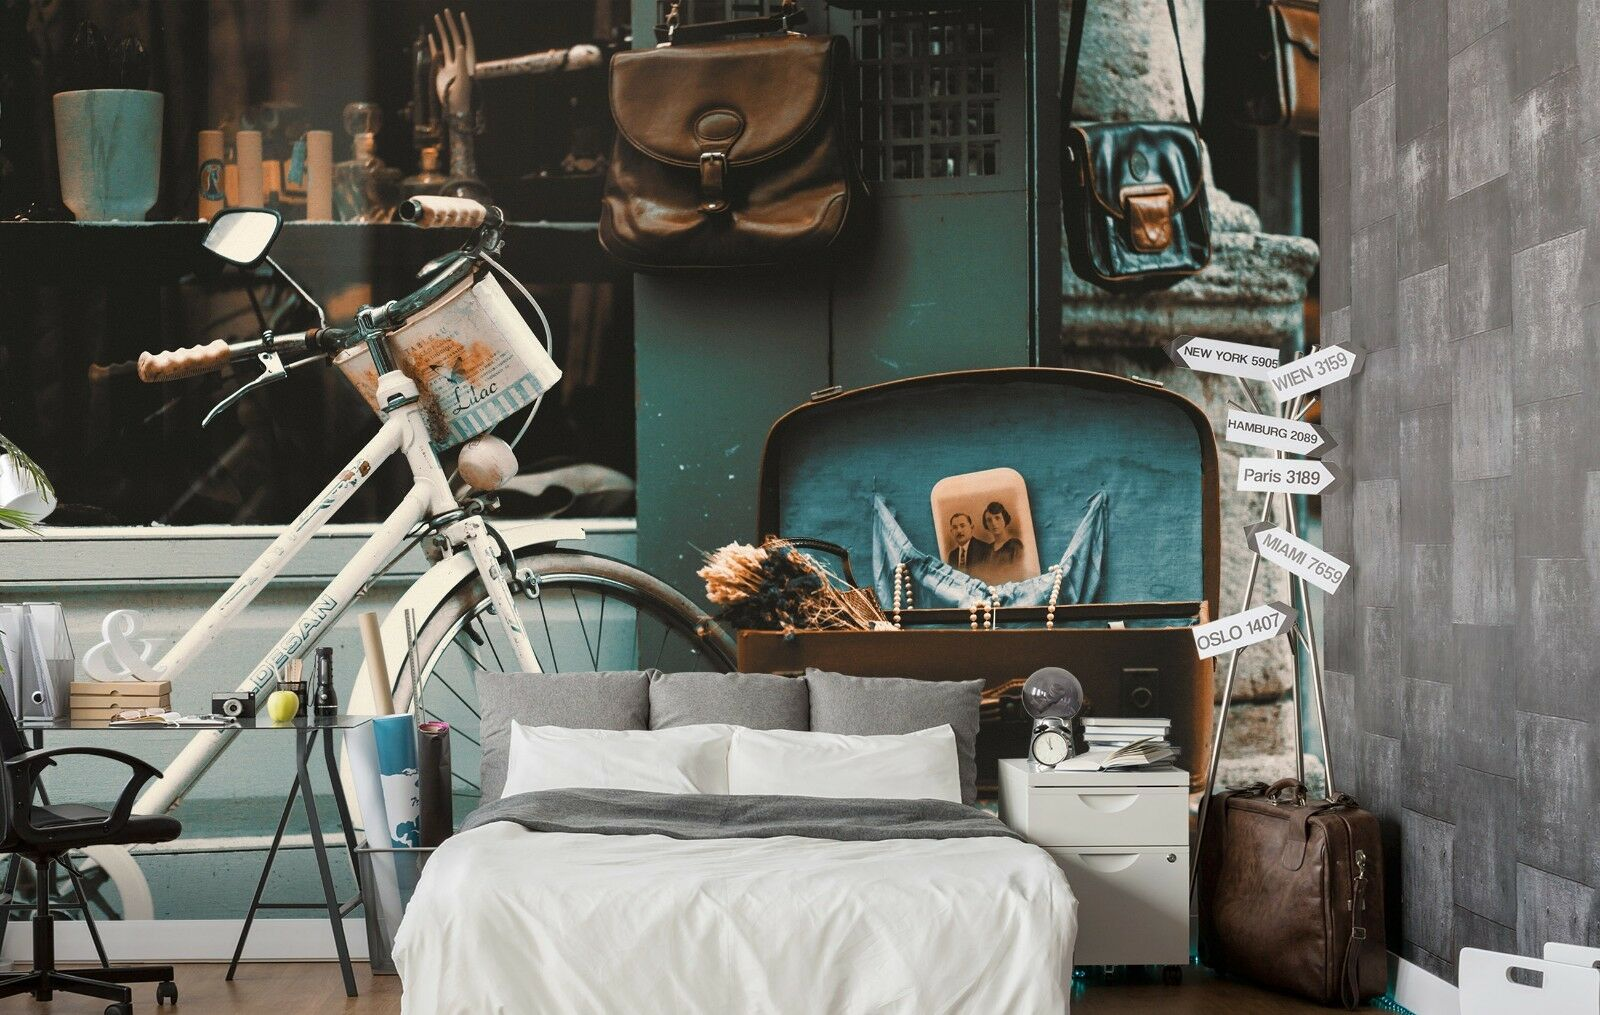 3D Old Bike 7190 Wall Paper Print Wall Decal Deco Indoor Wall Murals US Summer